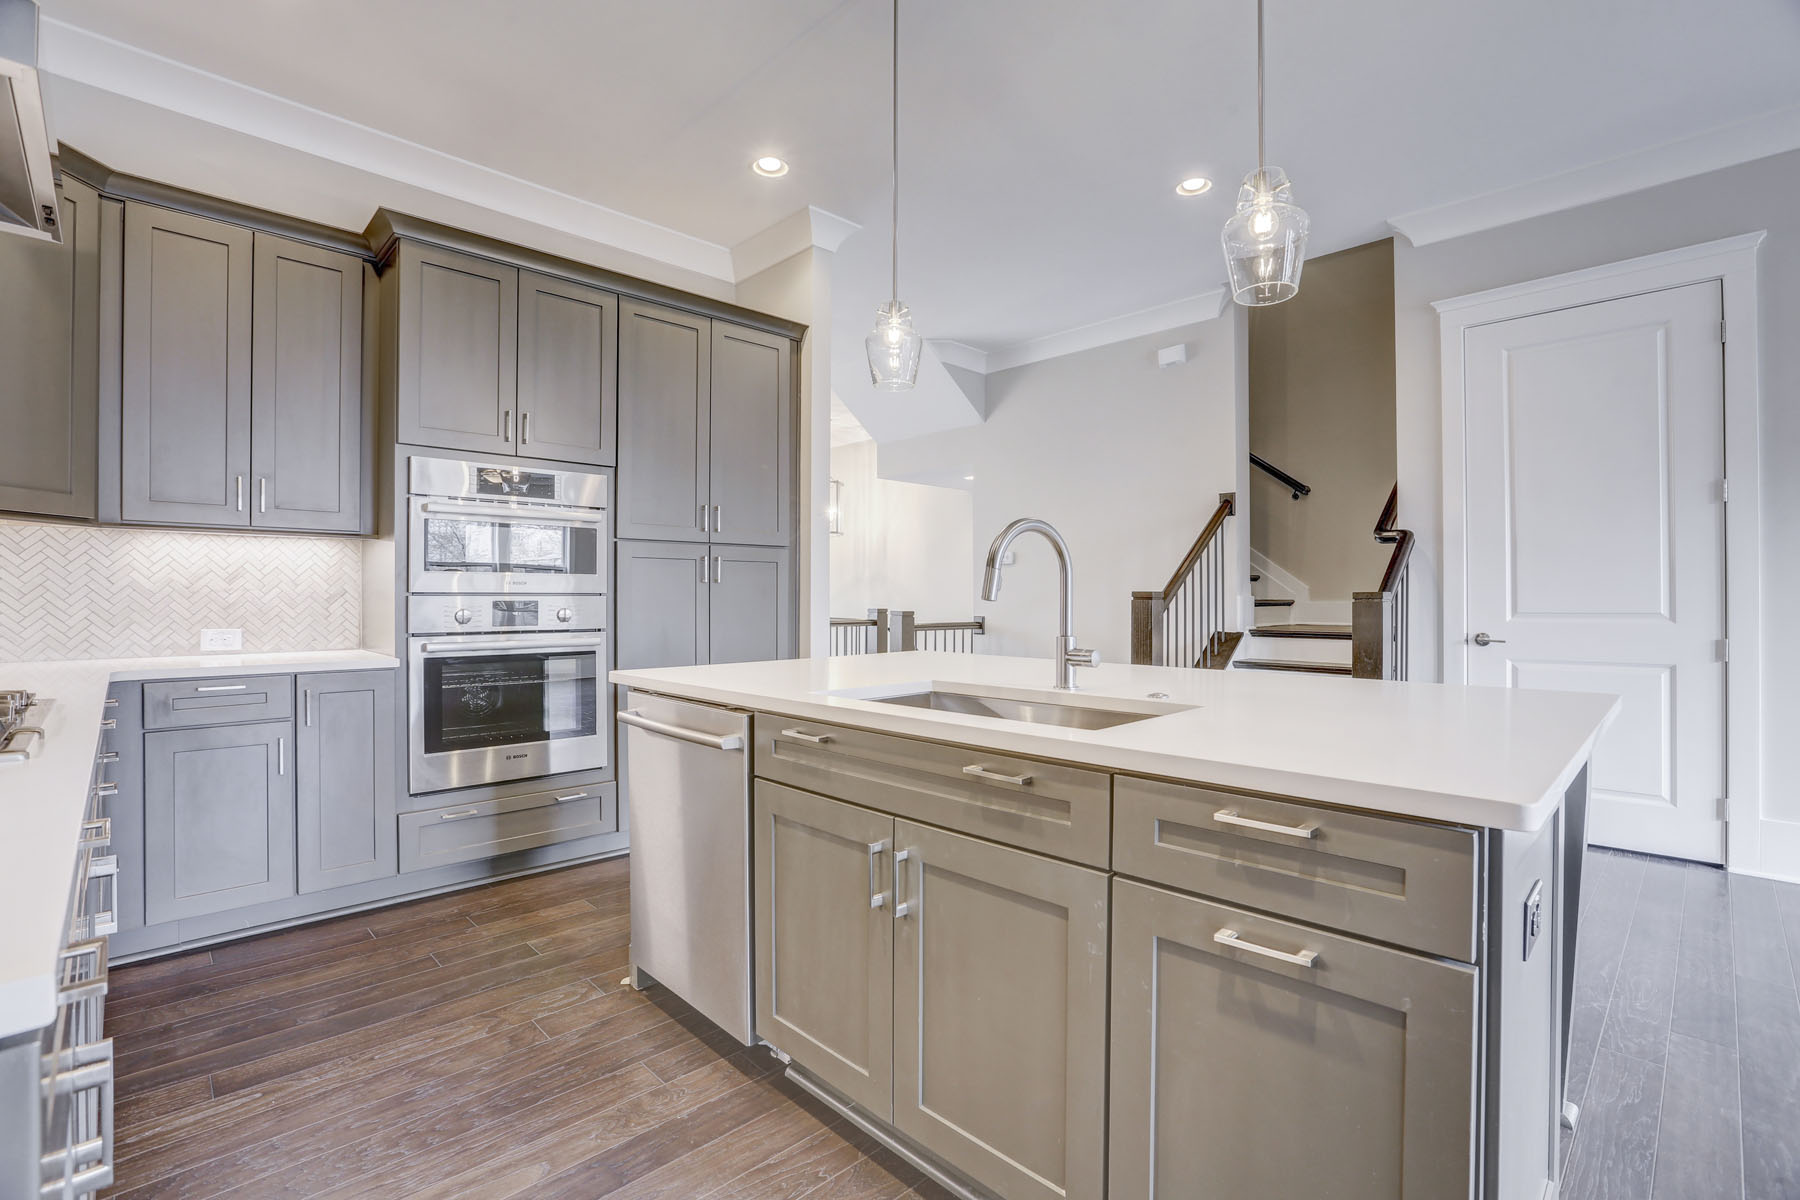 Additional photo for property listing at New Construction in the Heart of Dunwoody 4191 Wisconsin Dr Dunwoody, ジョージア 30338 アメリカ合衆国